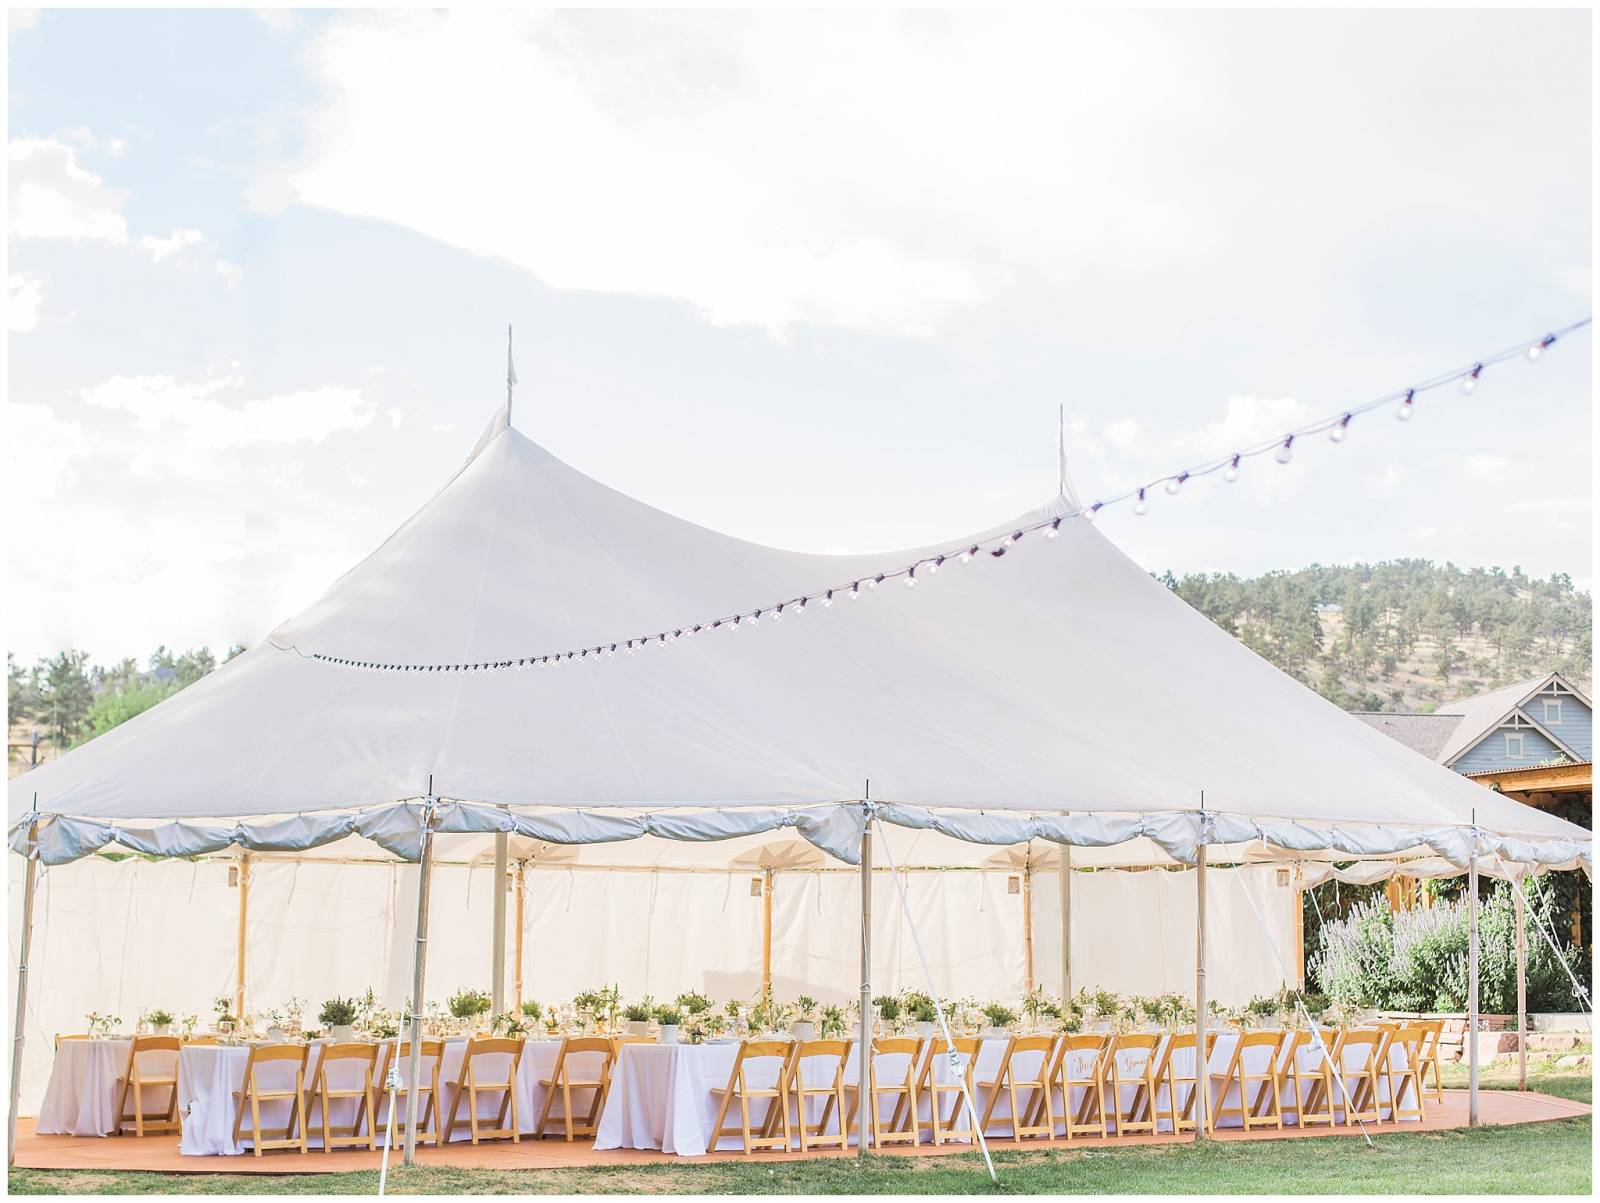 outdoor white tent wedding reception planned by root + gather events